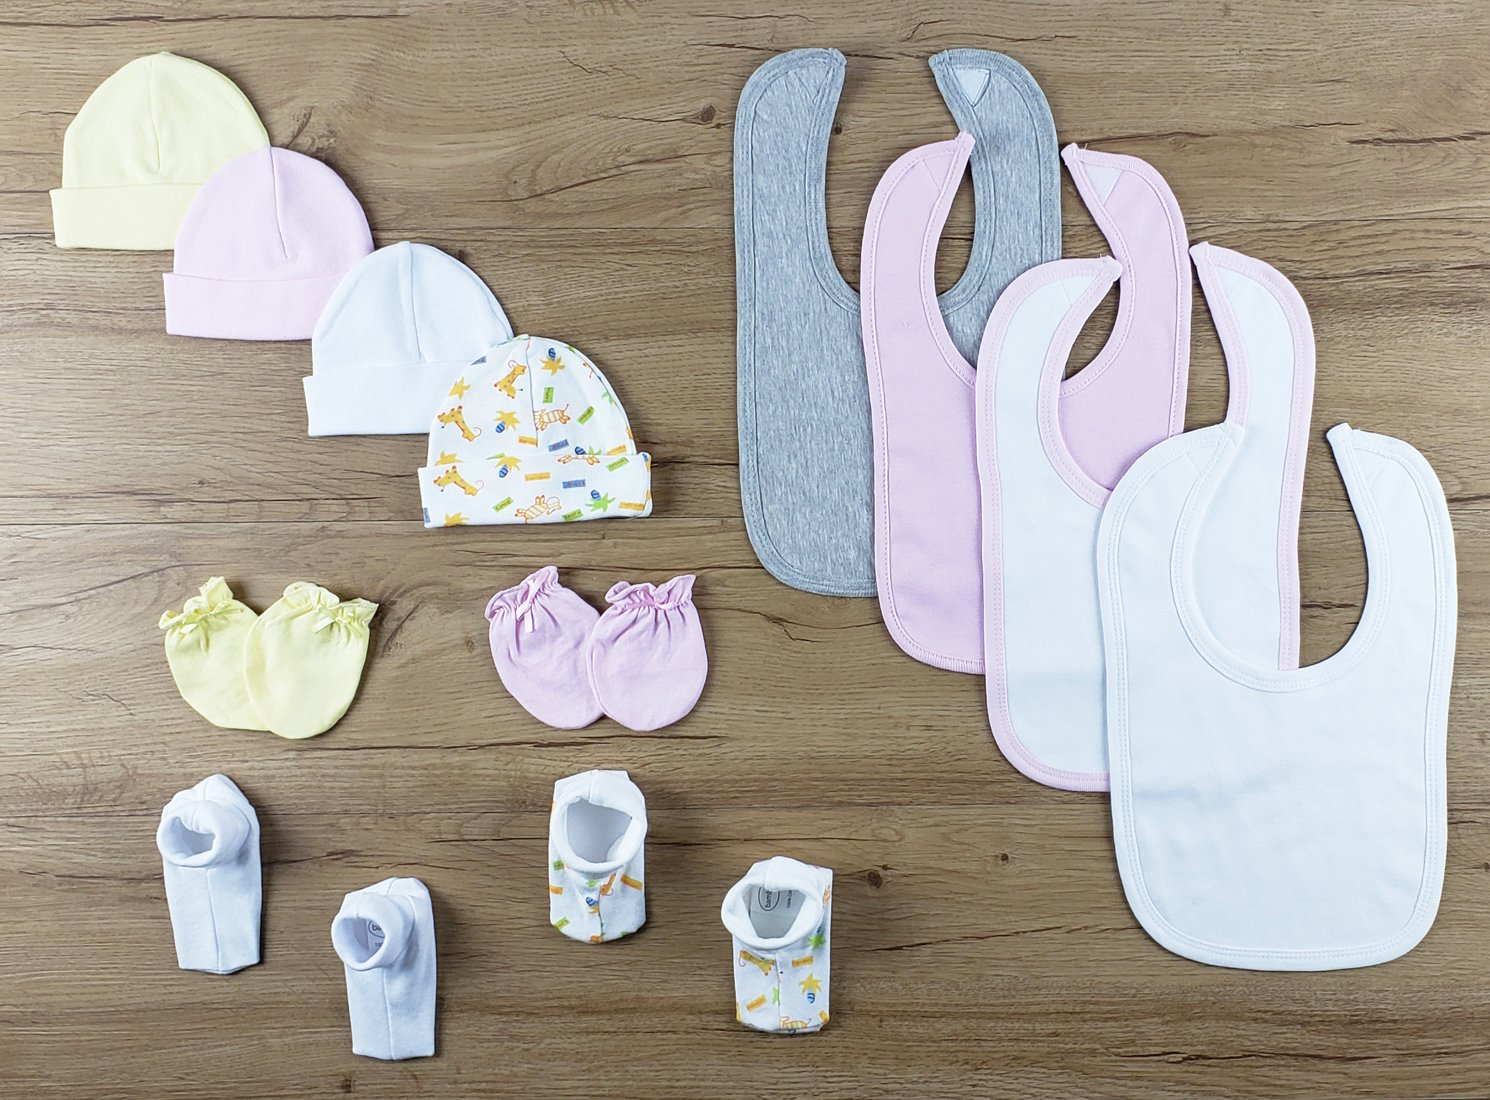 Bambini 13 PC set of Bibs, Caps, Booties - Baby World Inc